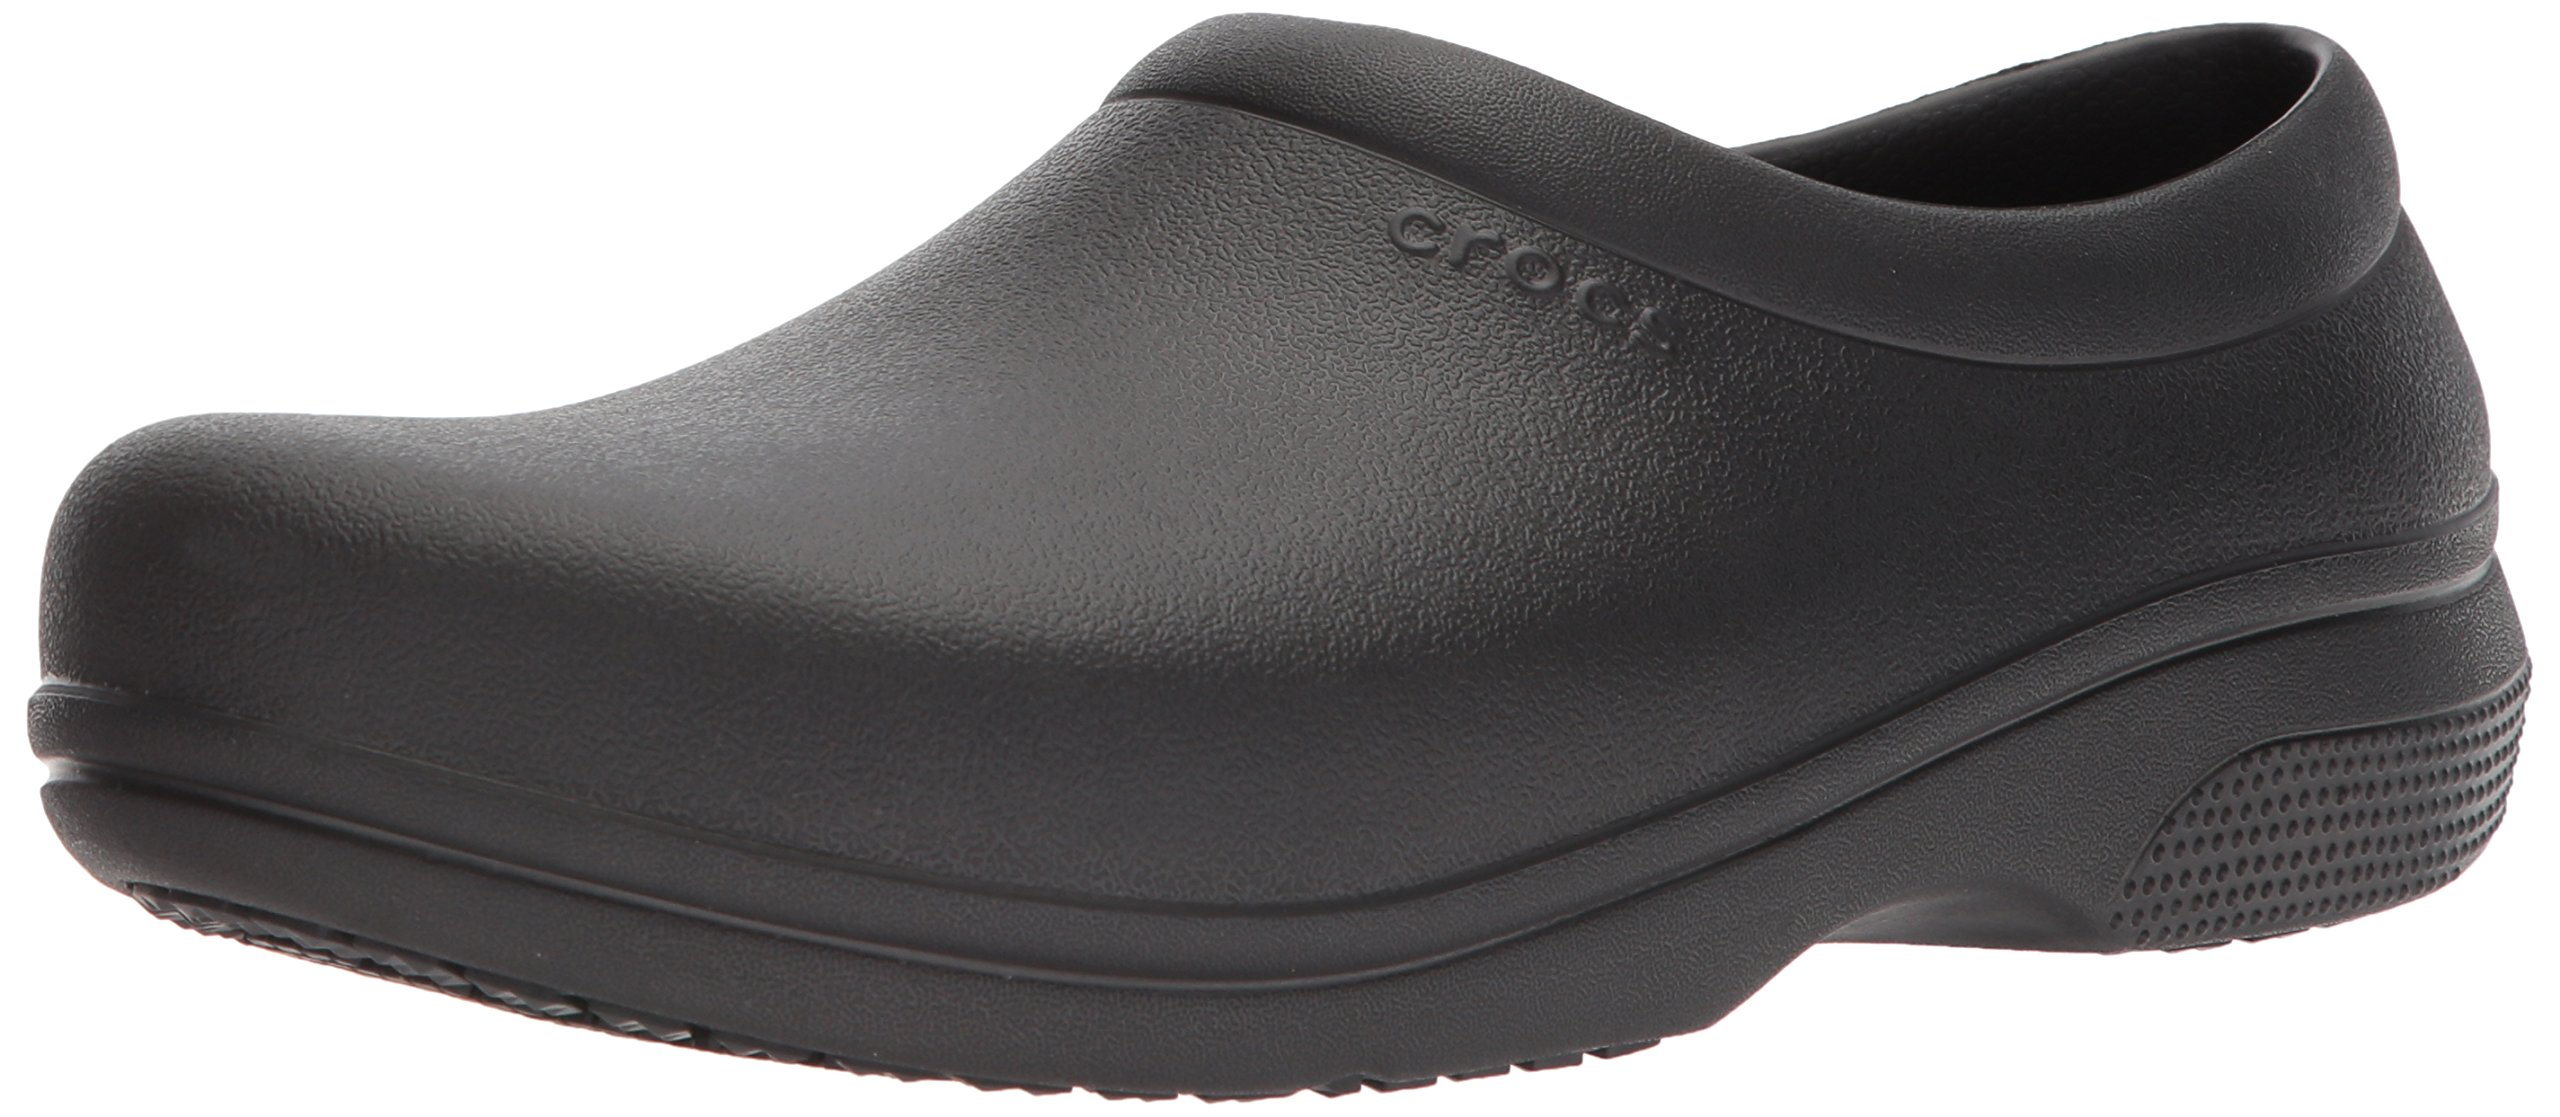 Crocs on The Clock Work Slipon Medical Professional Shoe, Black, 8 US Men/10 US Women M US by Crocs